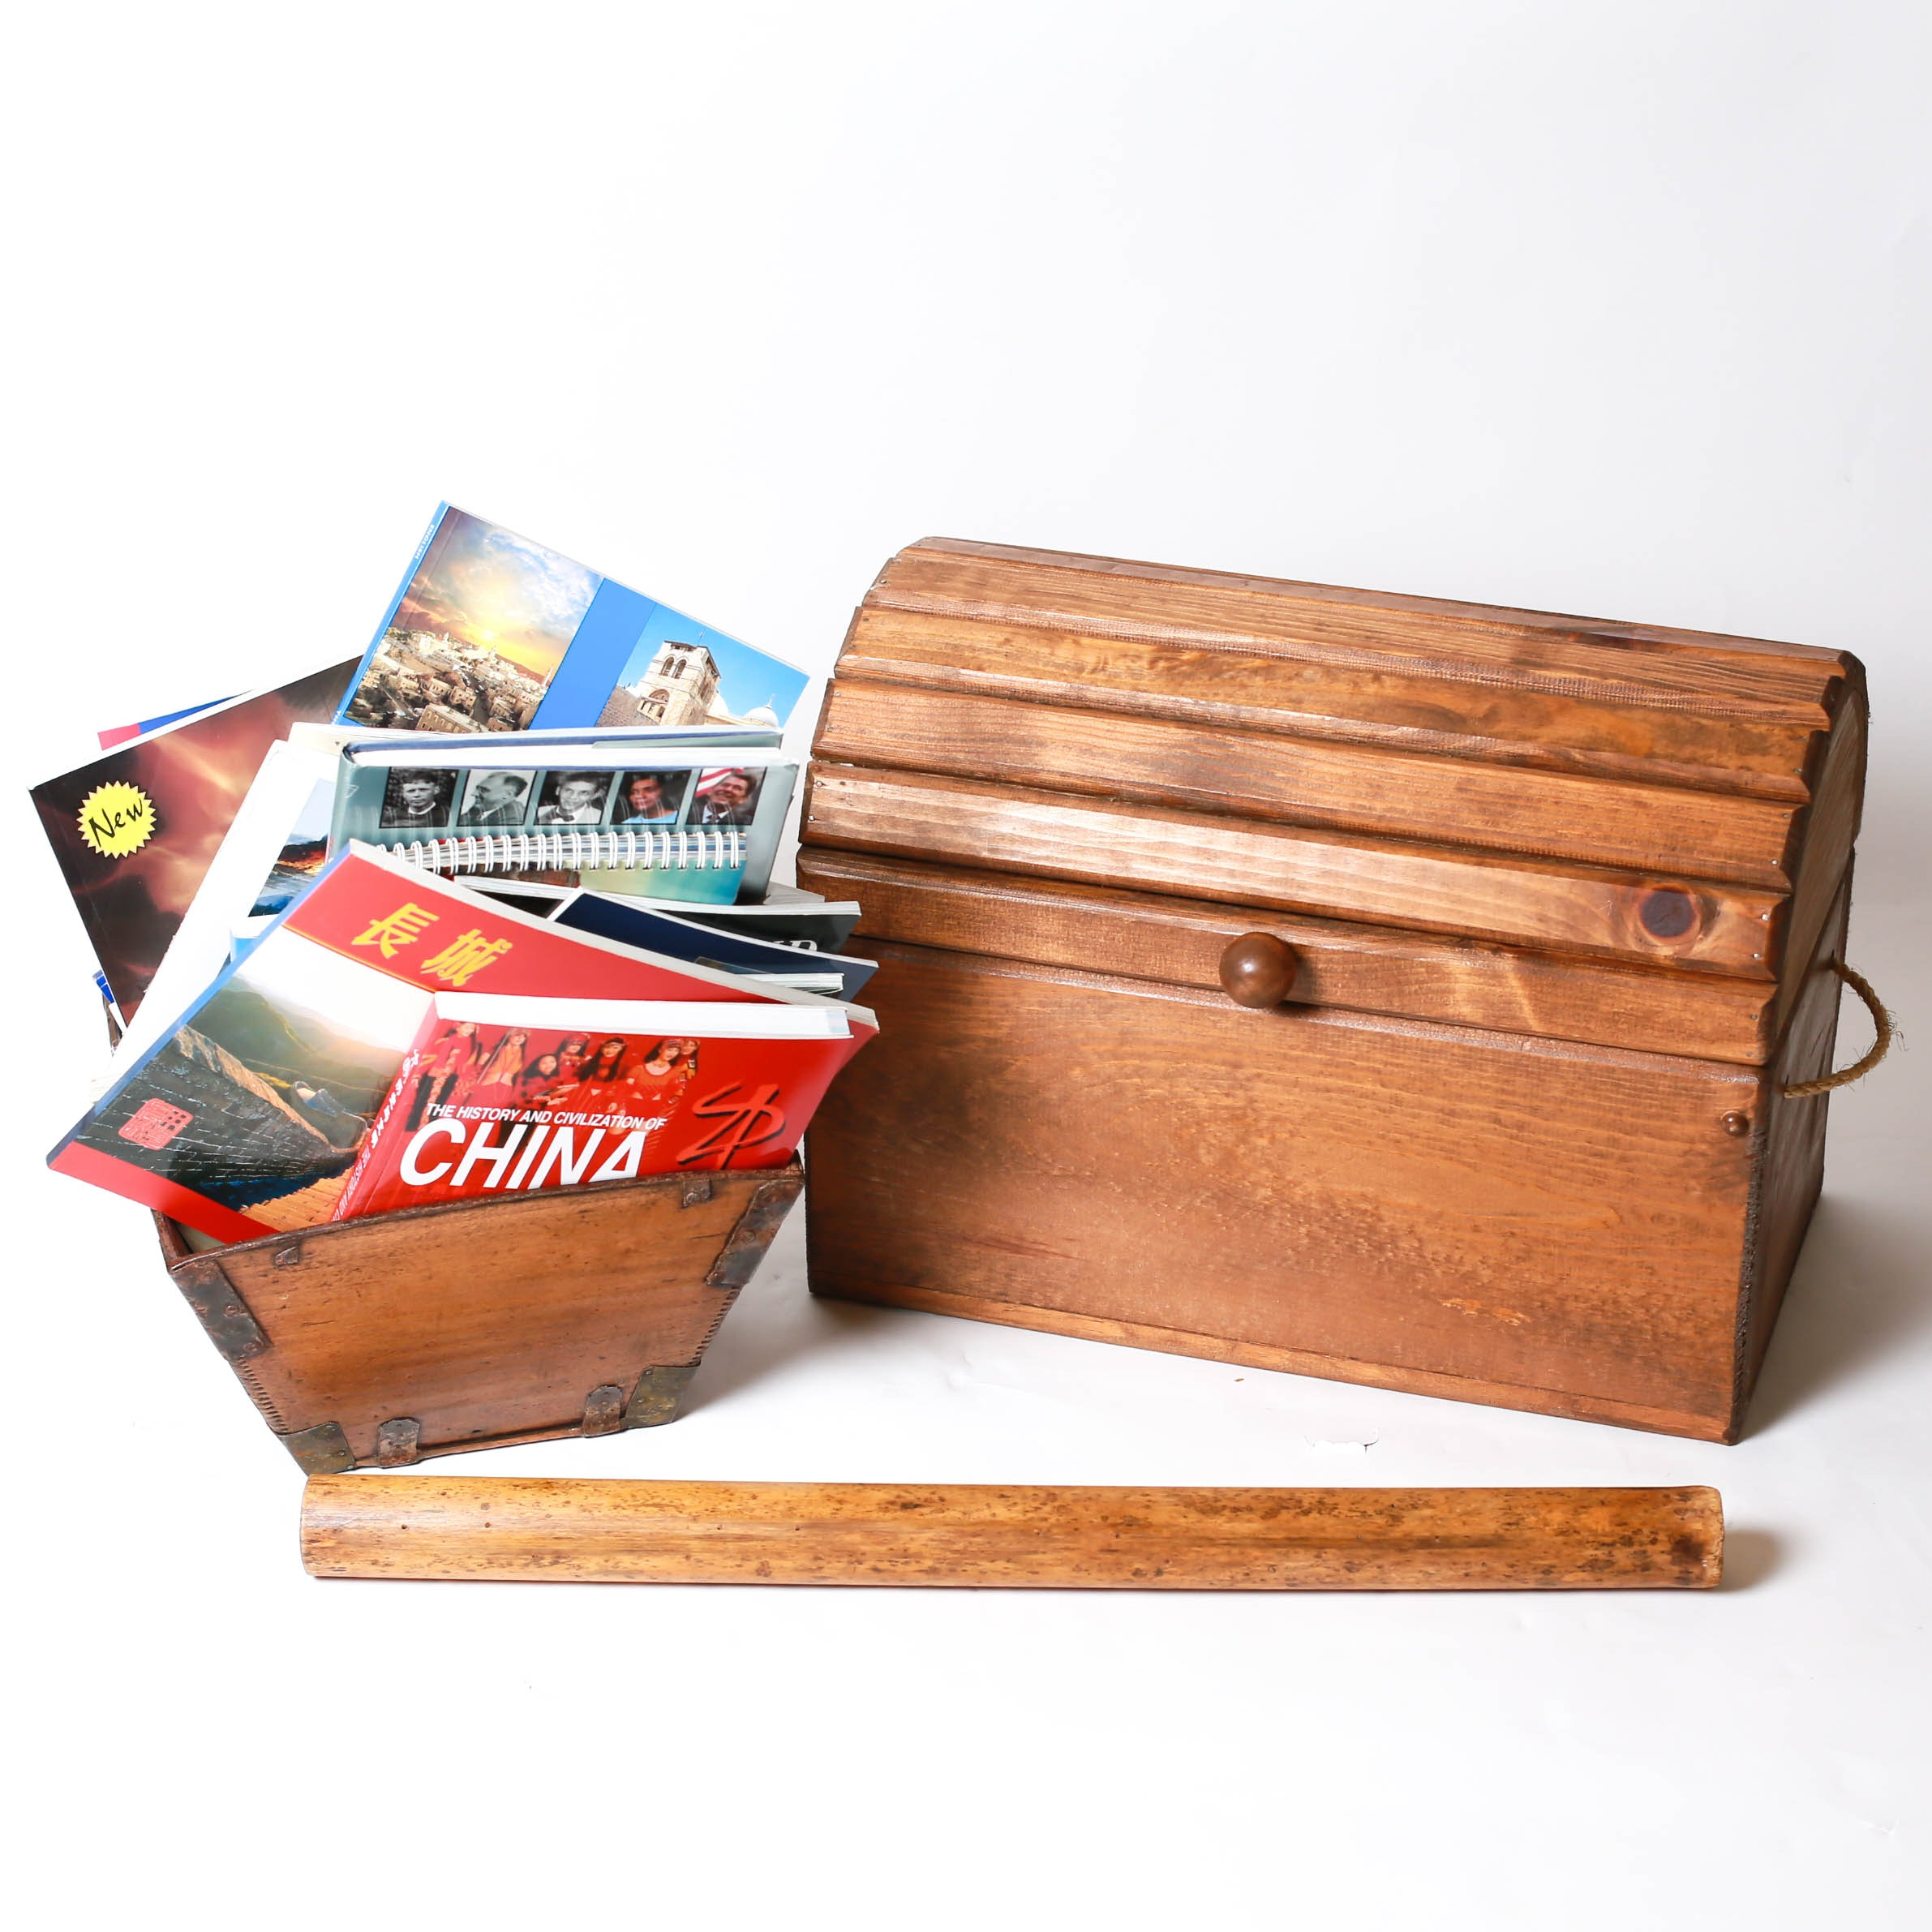 Wooden Chest, Magazine Rack with Travel Coffee Table Books, and Rain Stick